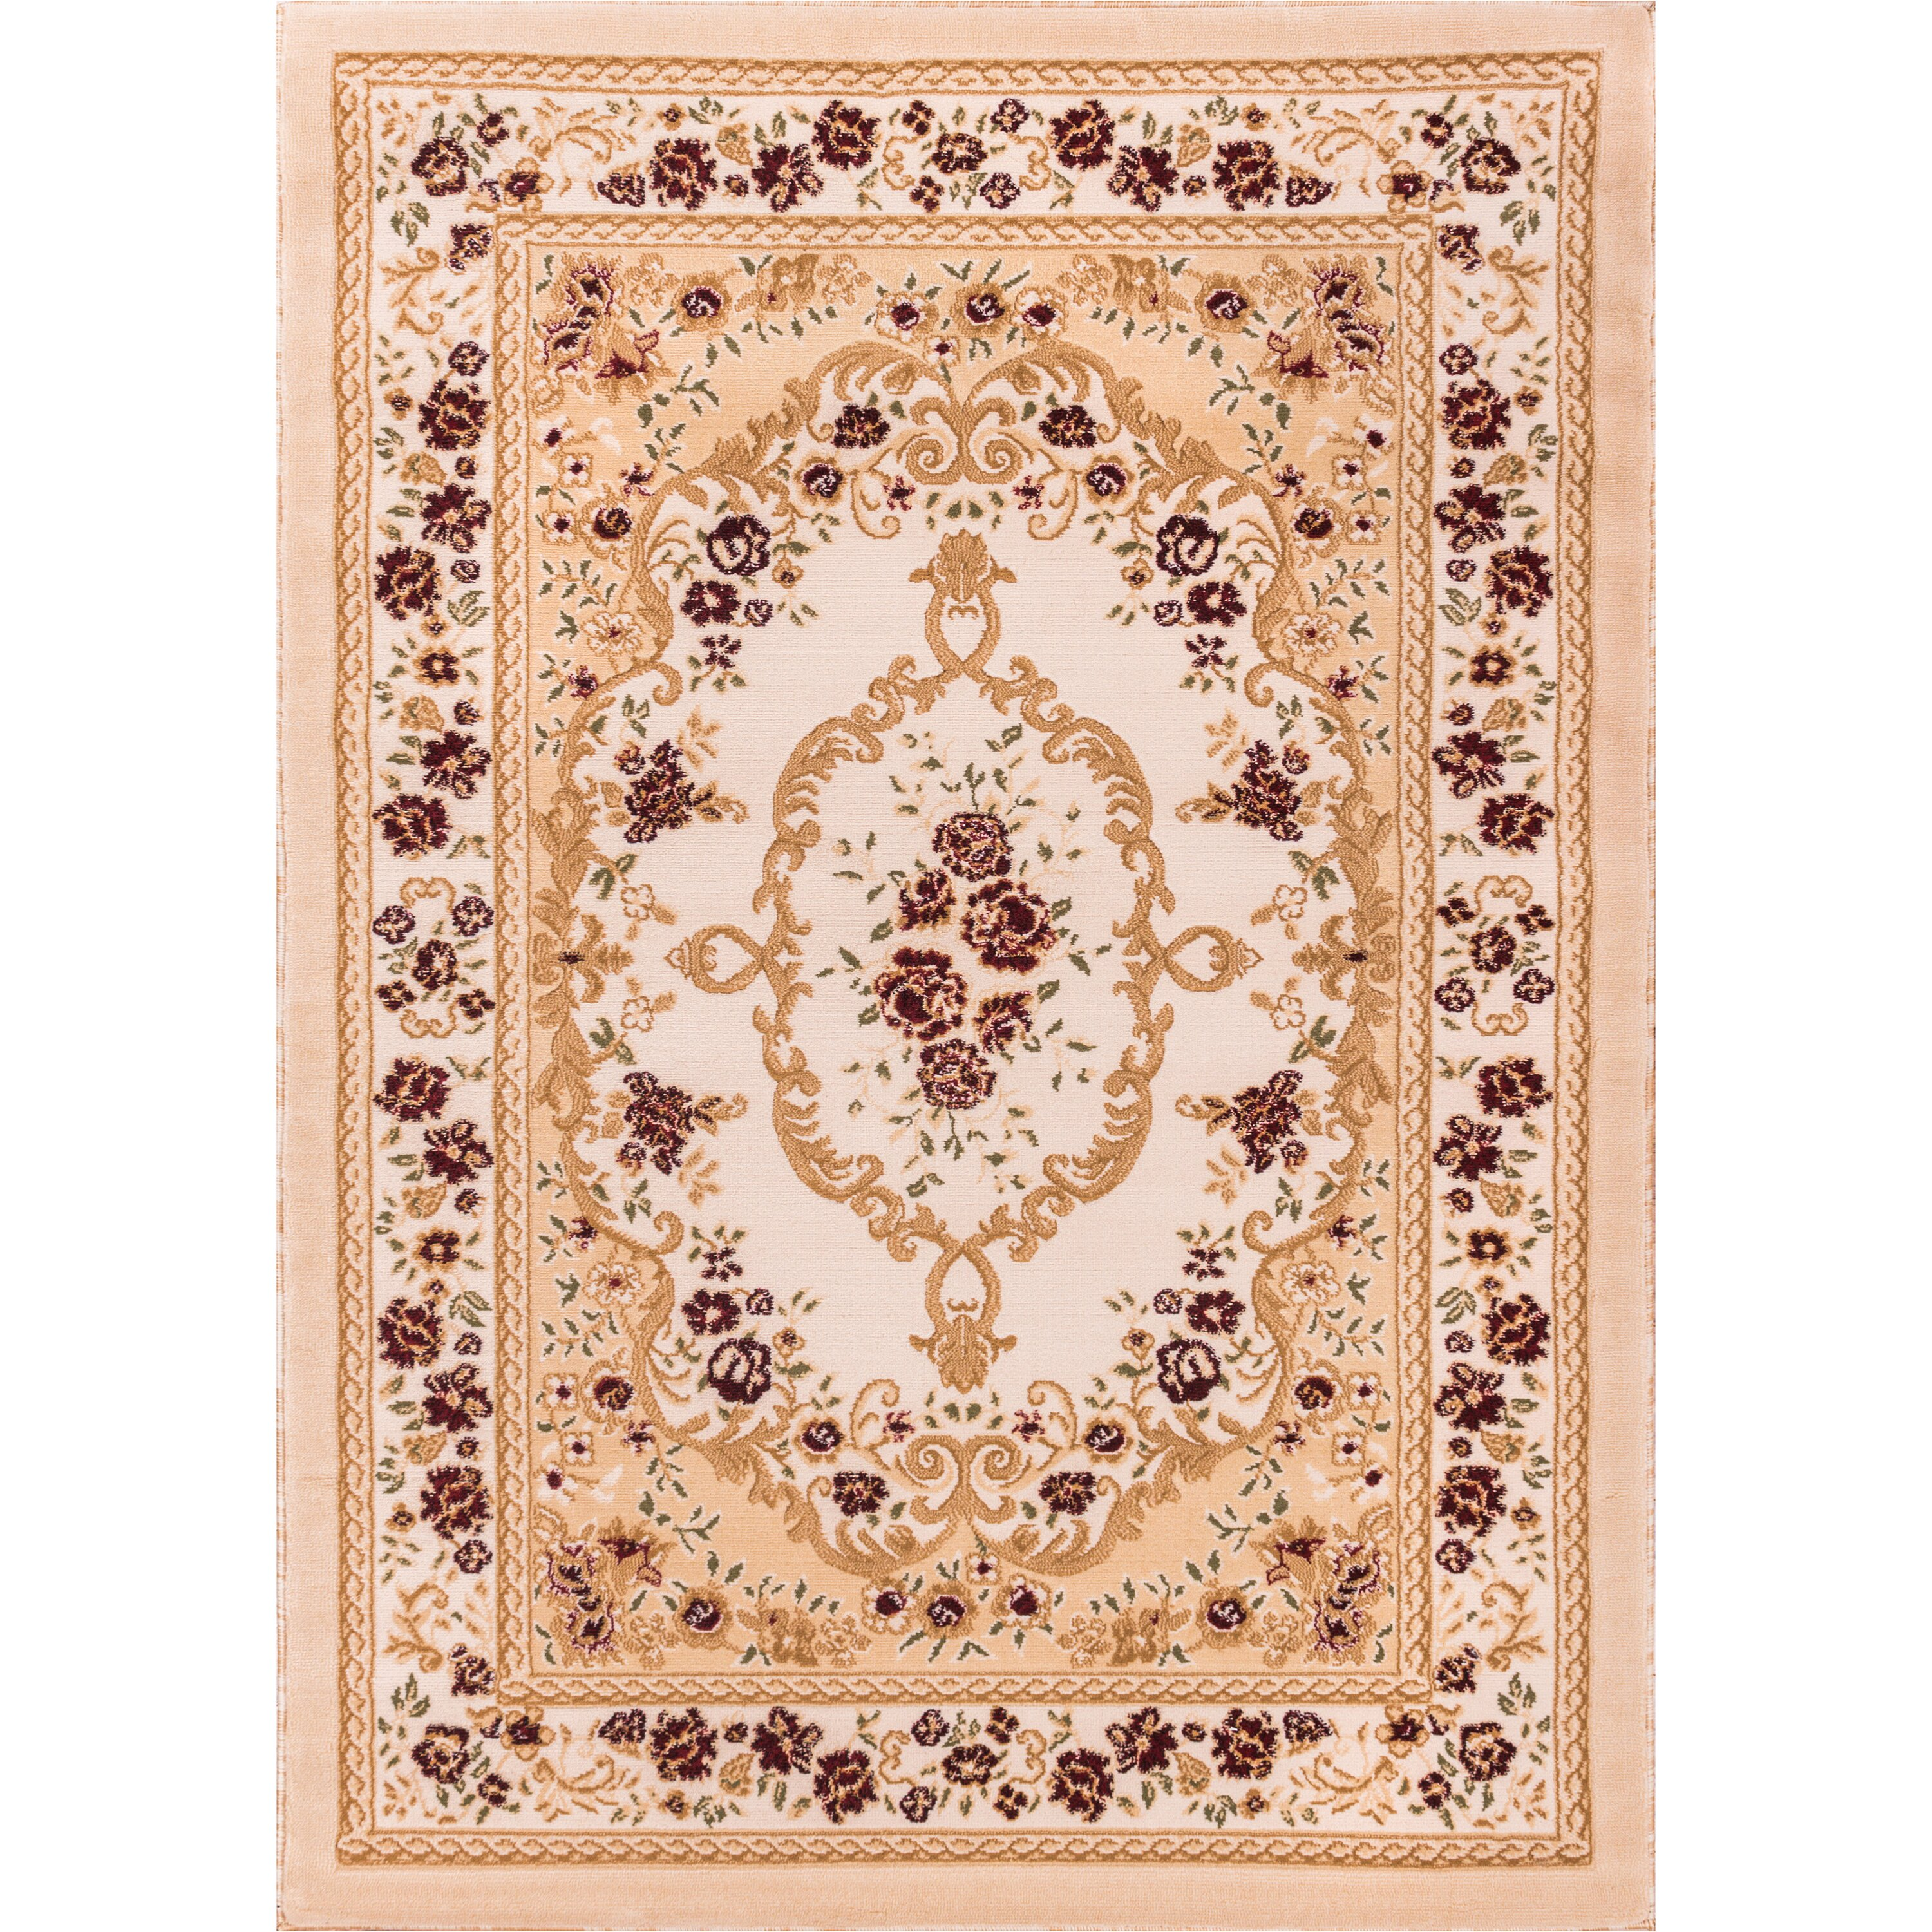 Dog Eating Wool Rug: Well Woven Comfy Living Area Rug